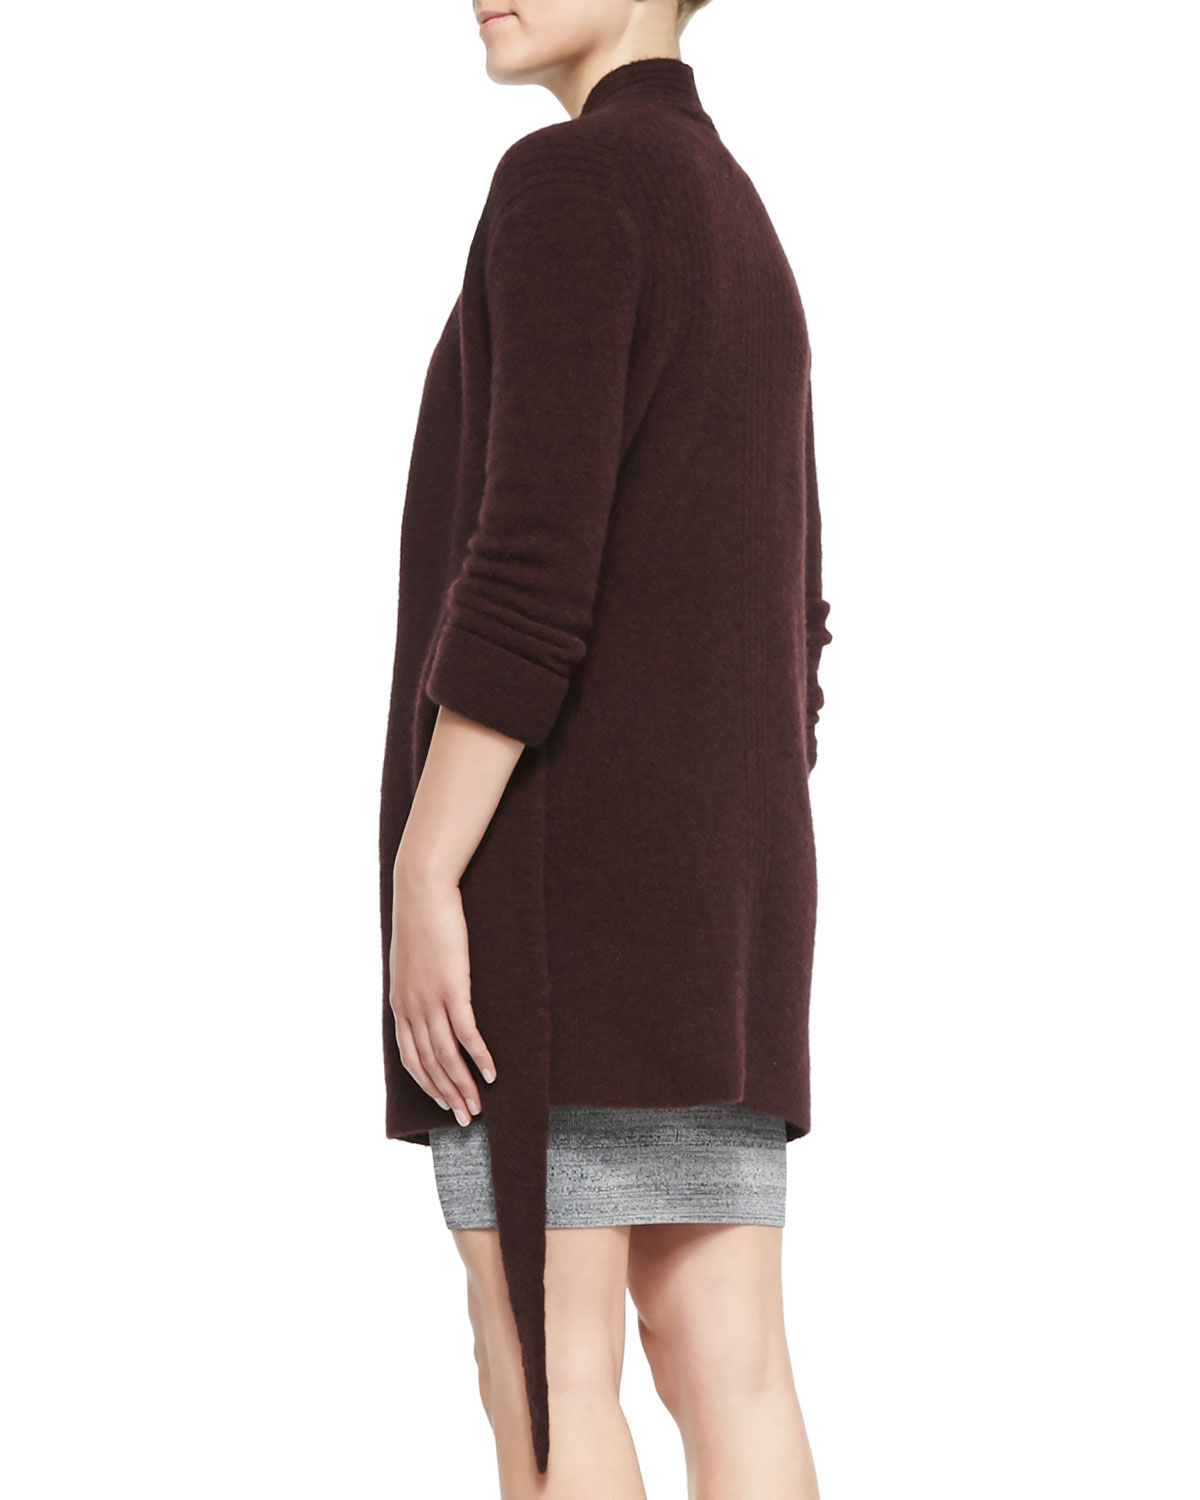 KNITWEAR - Cardigans Halston Heritage Cheap Sale 2018 New Where Can You Find Outlet Where Can You Find wvoRCtfxCE